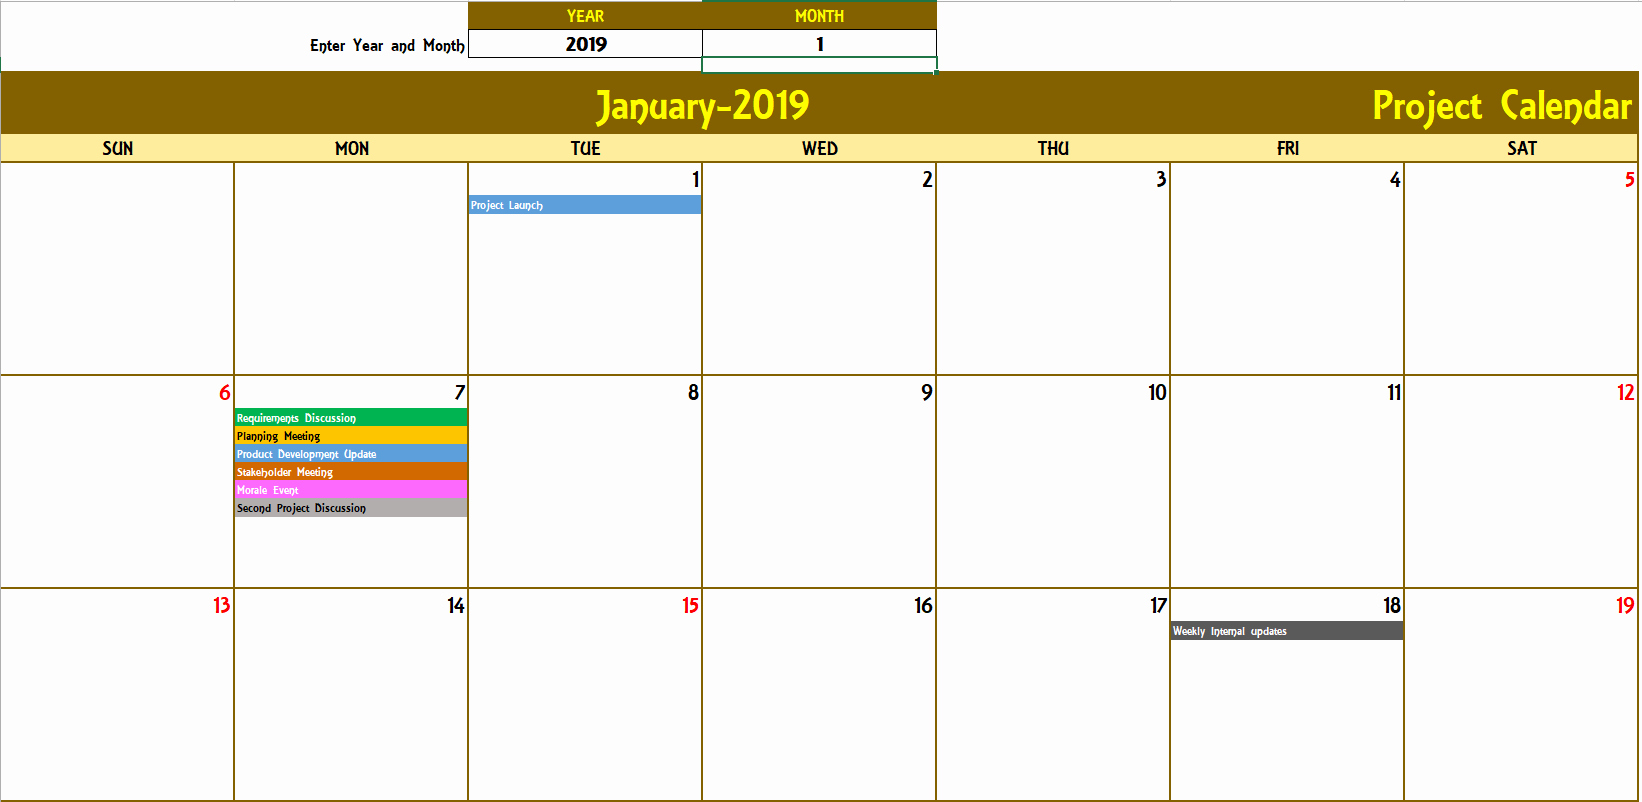 Monthly event Calendar Template Fresh Excel Calendar Template Excel Calendar 2019 2020 or Any